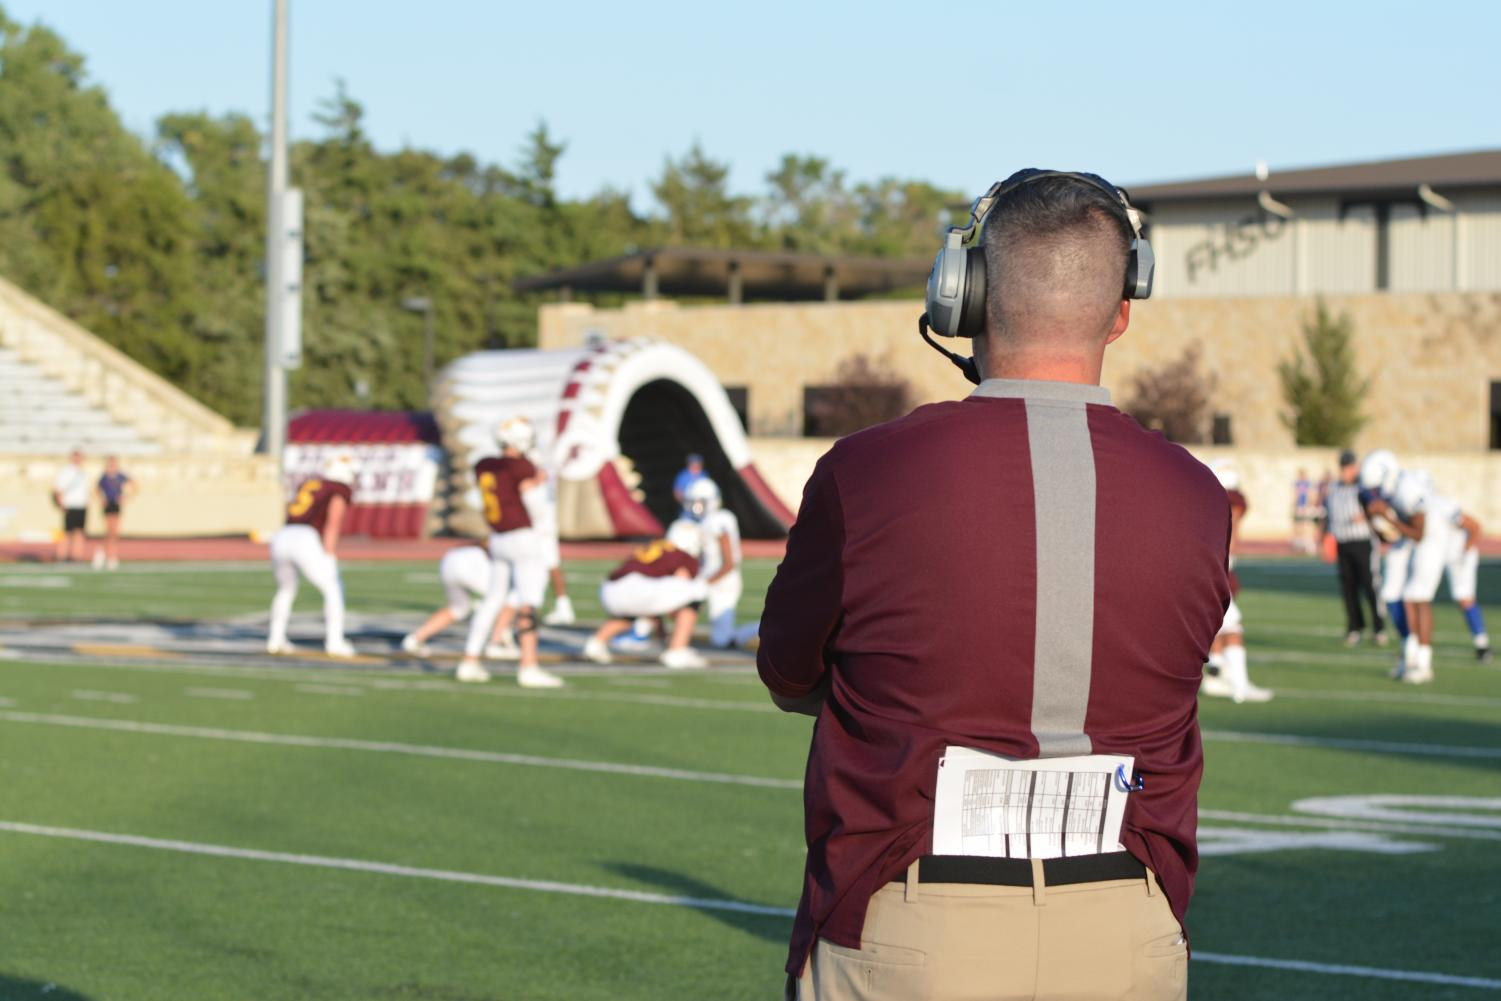 Coach Tony Crough watches from the sideline as the Indians run an offensive play.